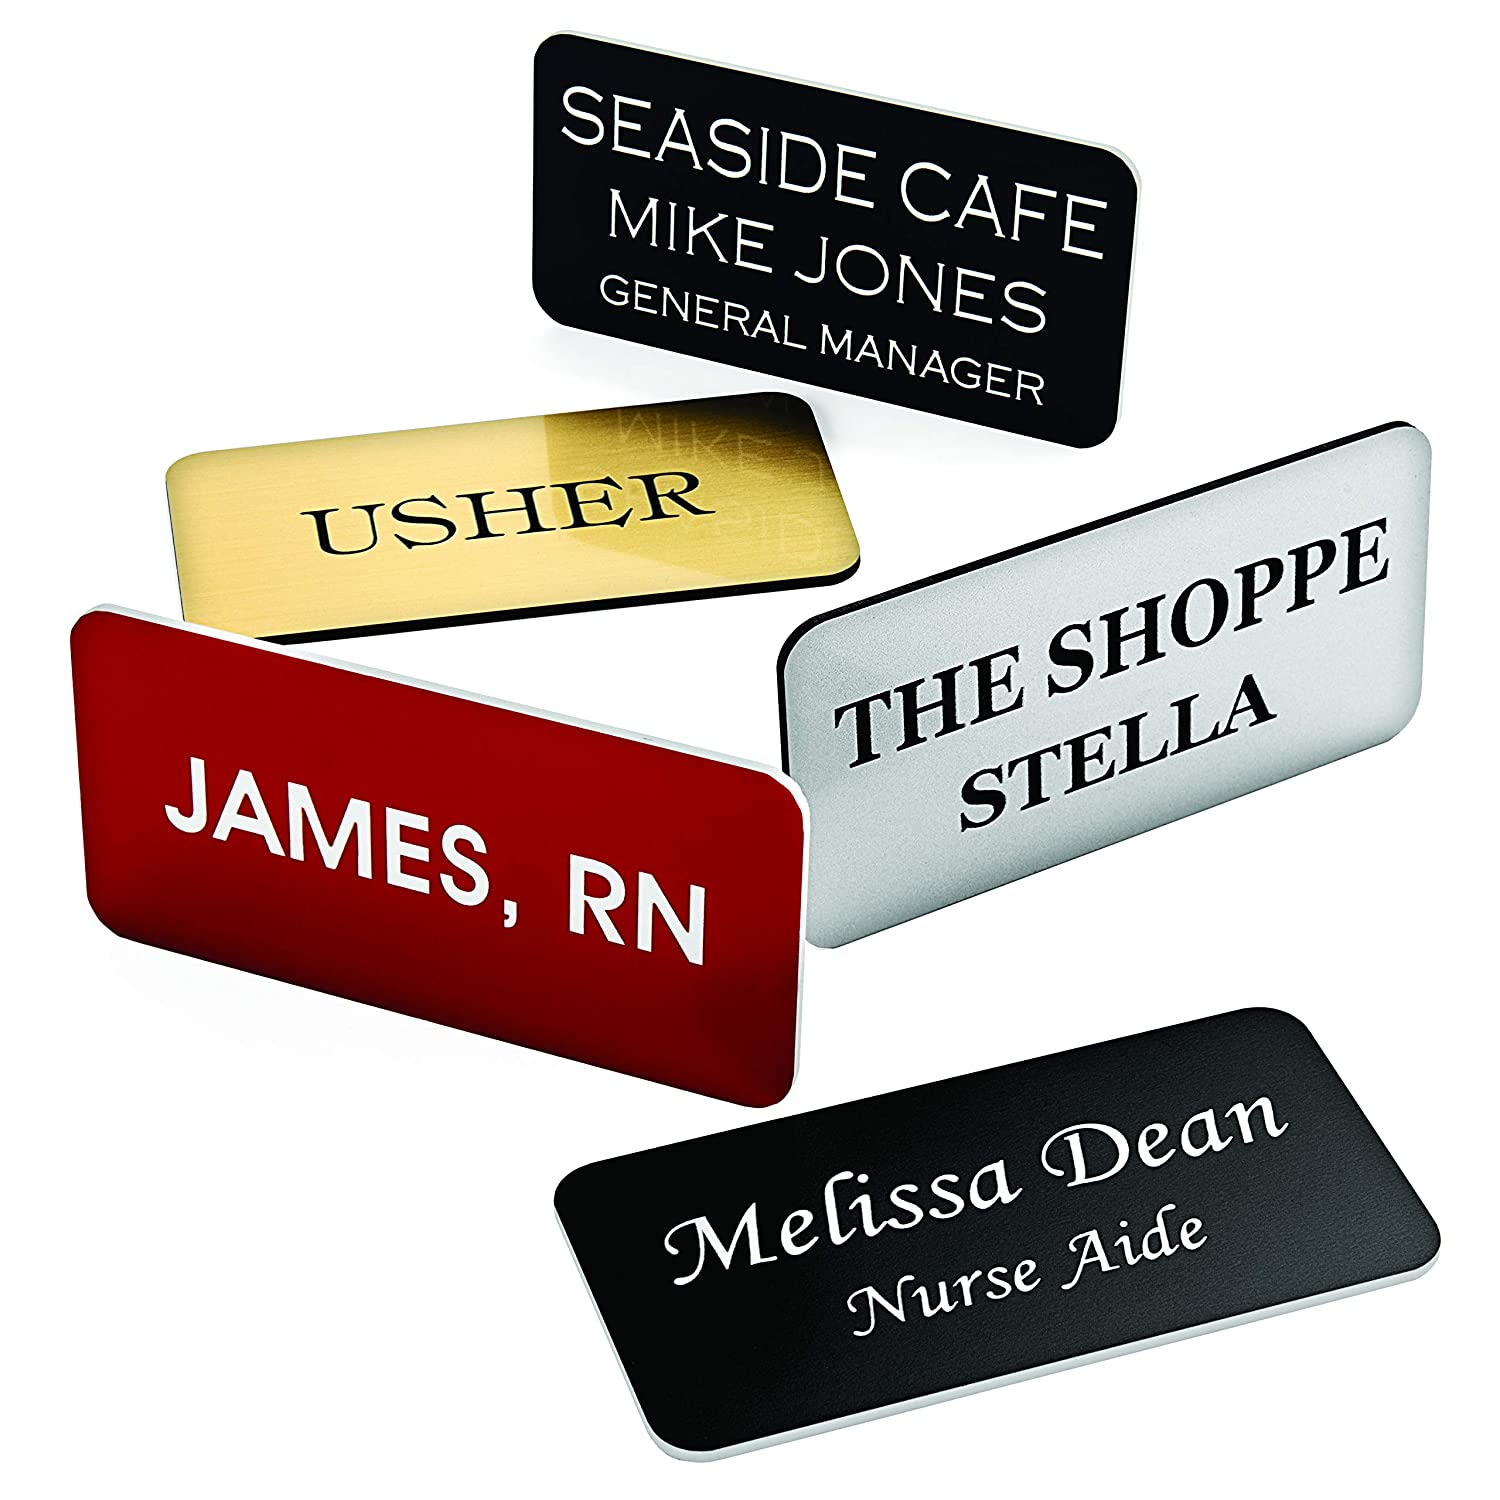 75b6ae6af835 Custom Engraved Name Tag Badges – Personalized Identification with Pin or  Magnetic Backing, 1 Inch x 3 Inches, Black/White